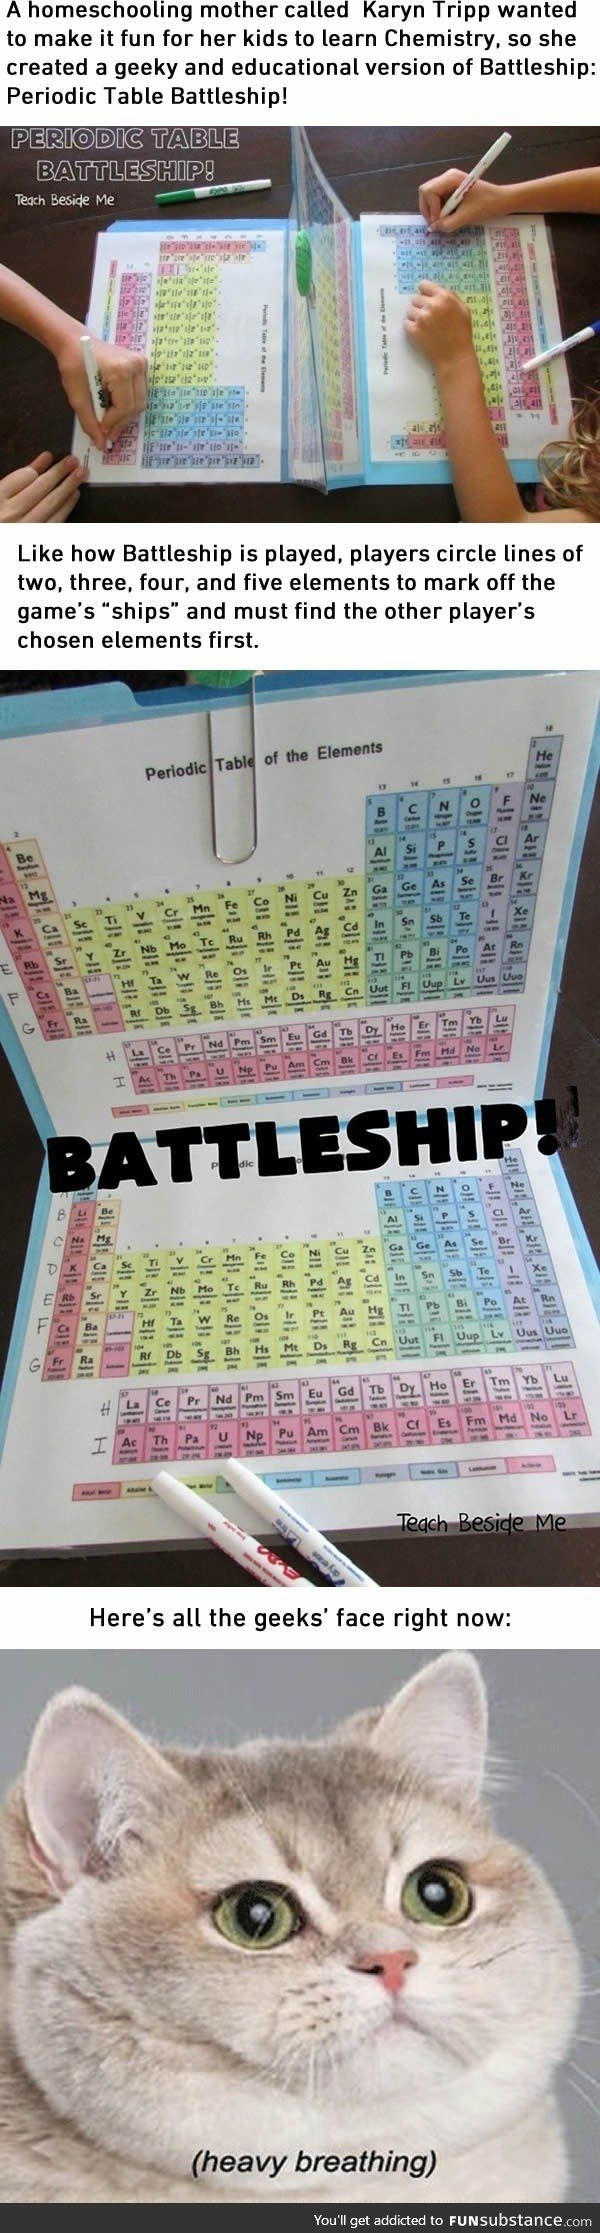 Best 25 periodic table ideas on pinterest periodic elements how to love chemistry more with this periodic table battleship gamestrikefo Images